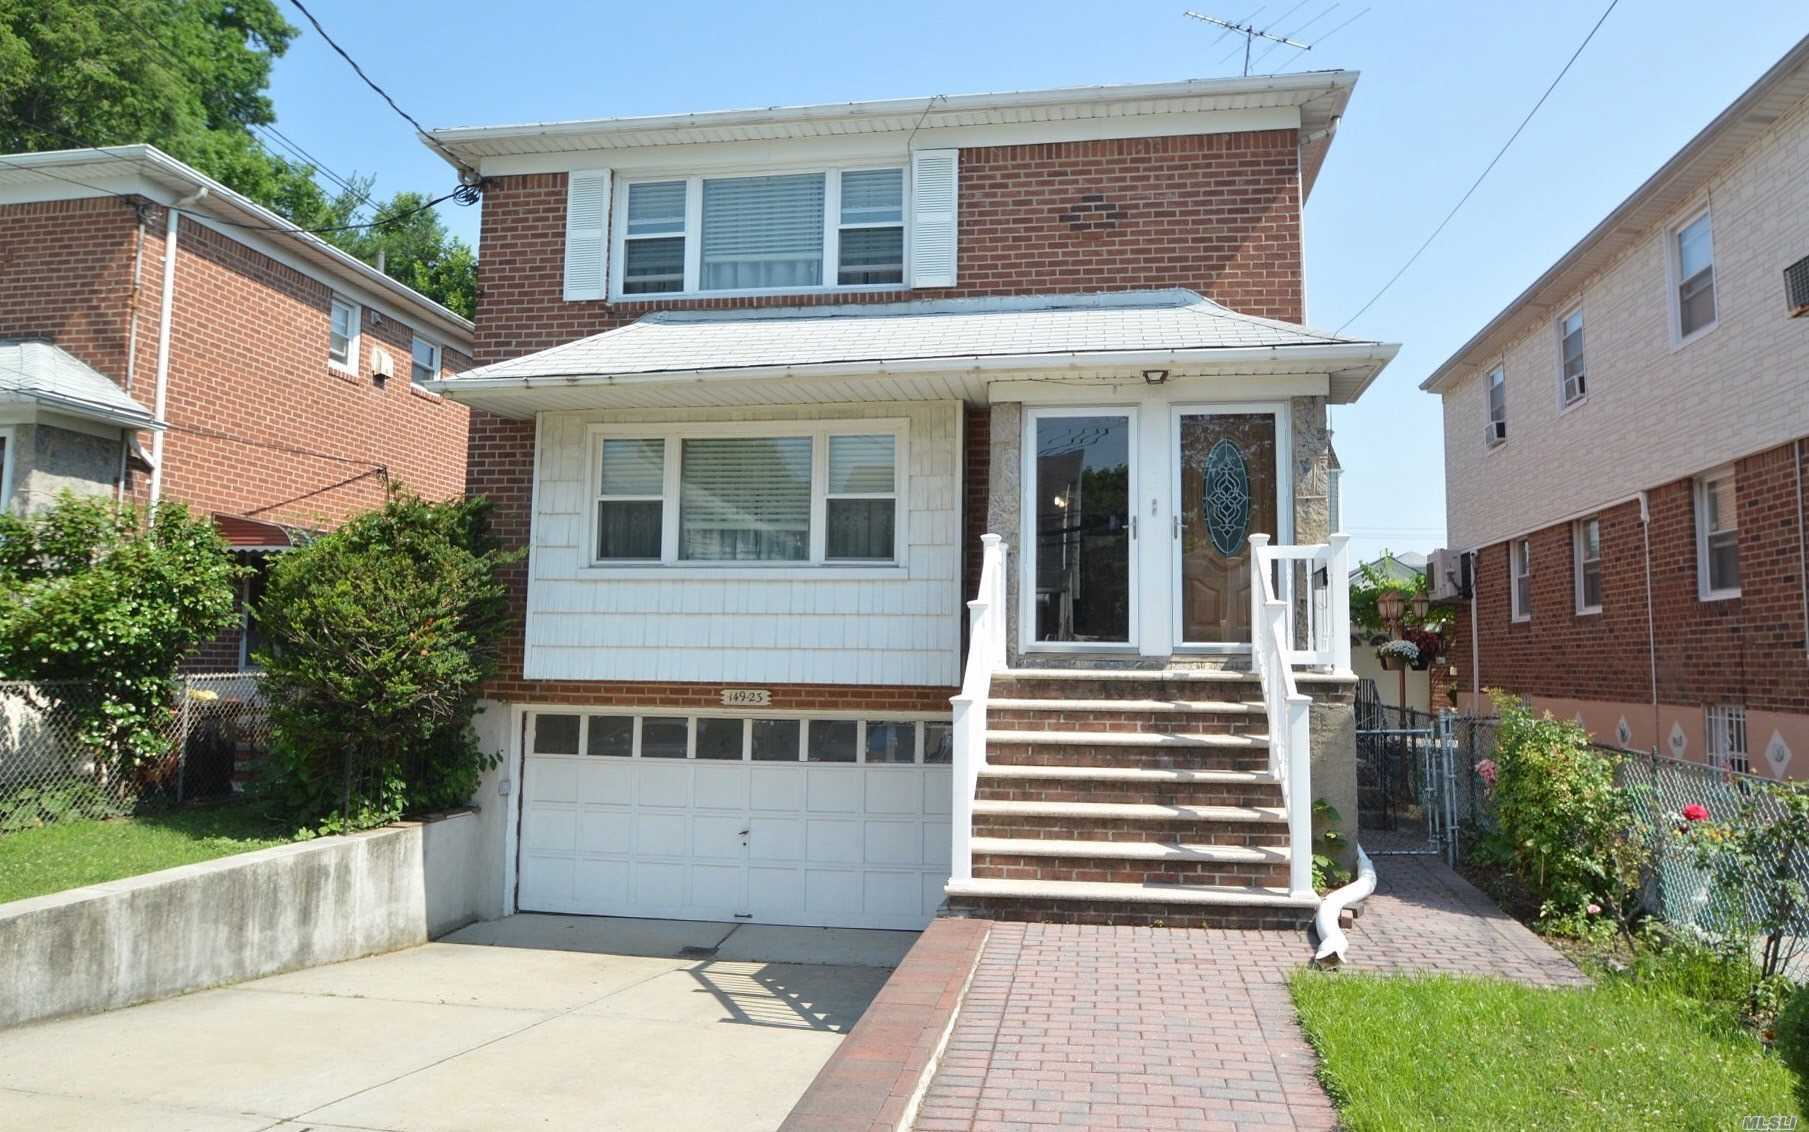 This Beautiful Brick 2 Family 3Full Beds Full Bath Mstr Suite Eik Lr Dr All Hardwoods...Large Backyard... Great Investment Property Or For Large Extended Families...